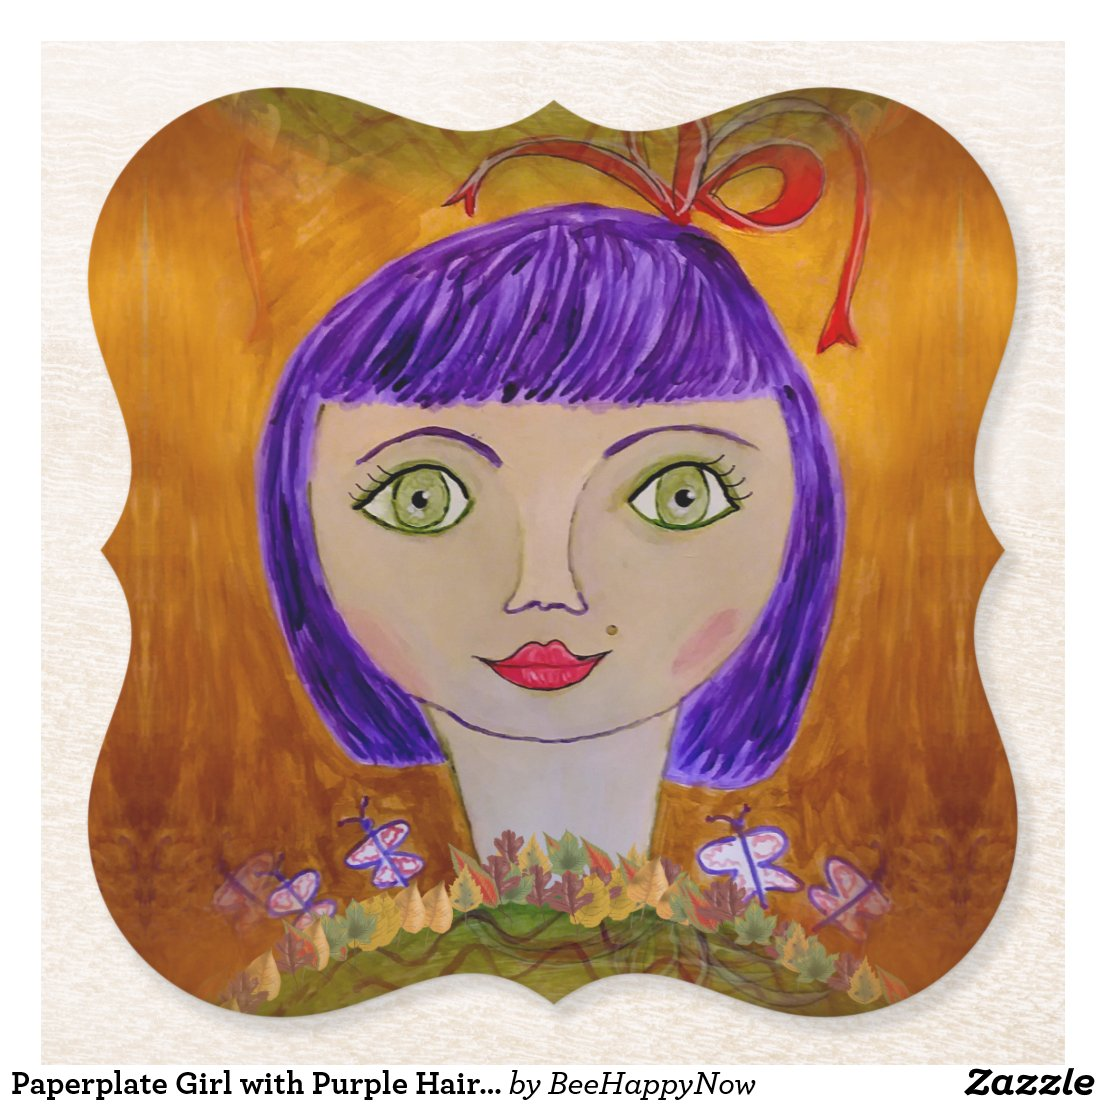 Paperplate Girl with Purple Hair on Drink Coasters